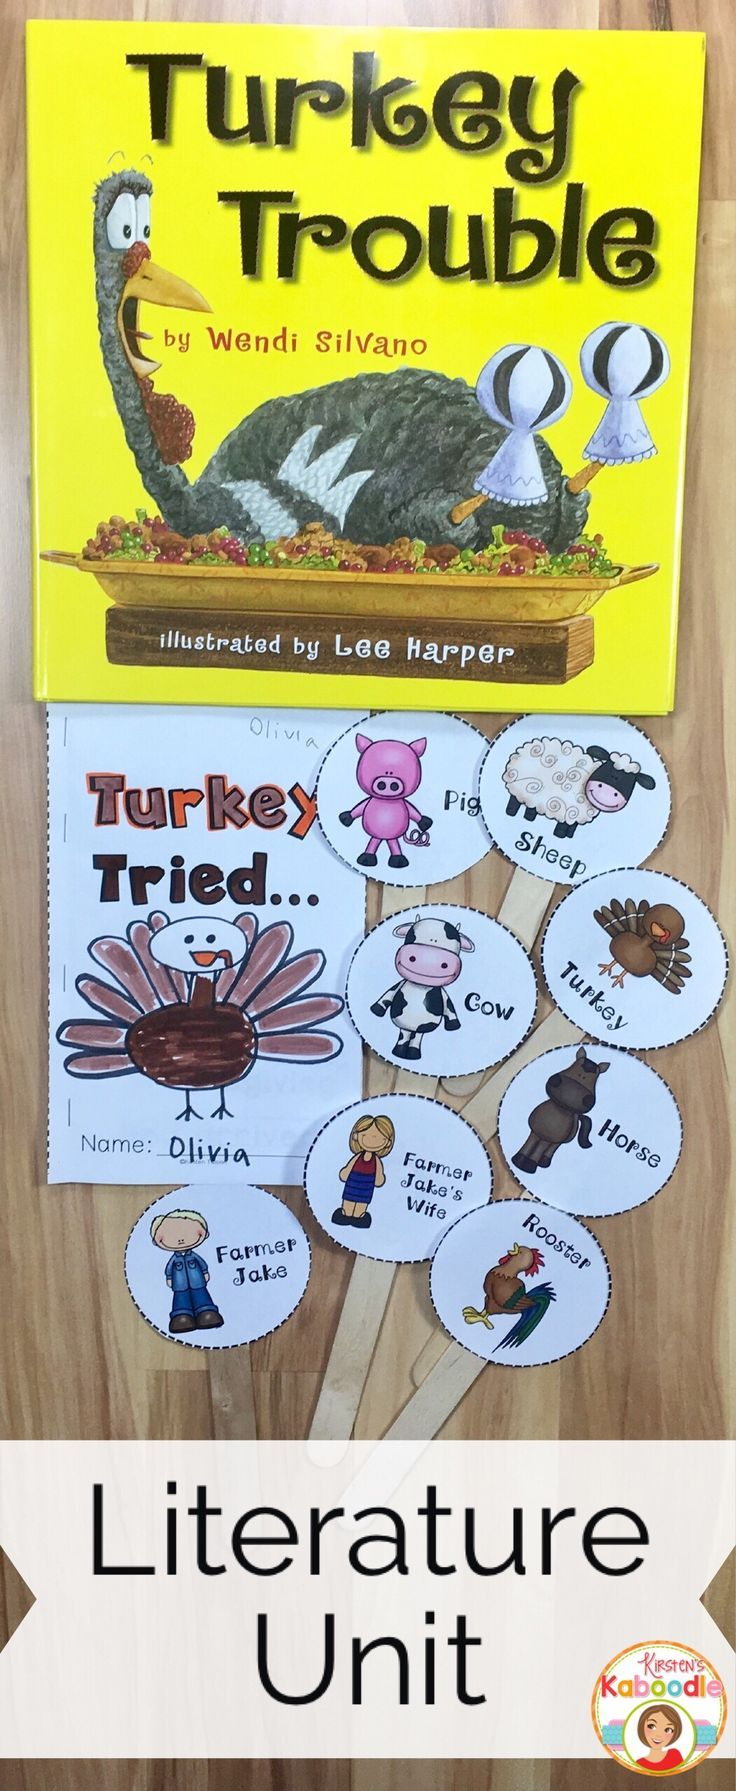 Literature craft and voice 2nd edition literature craft and voice 2nd edition turkey trouble download